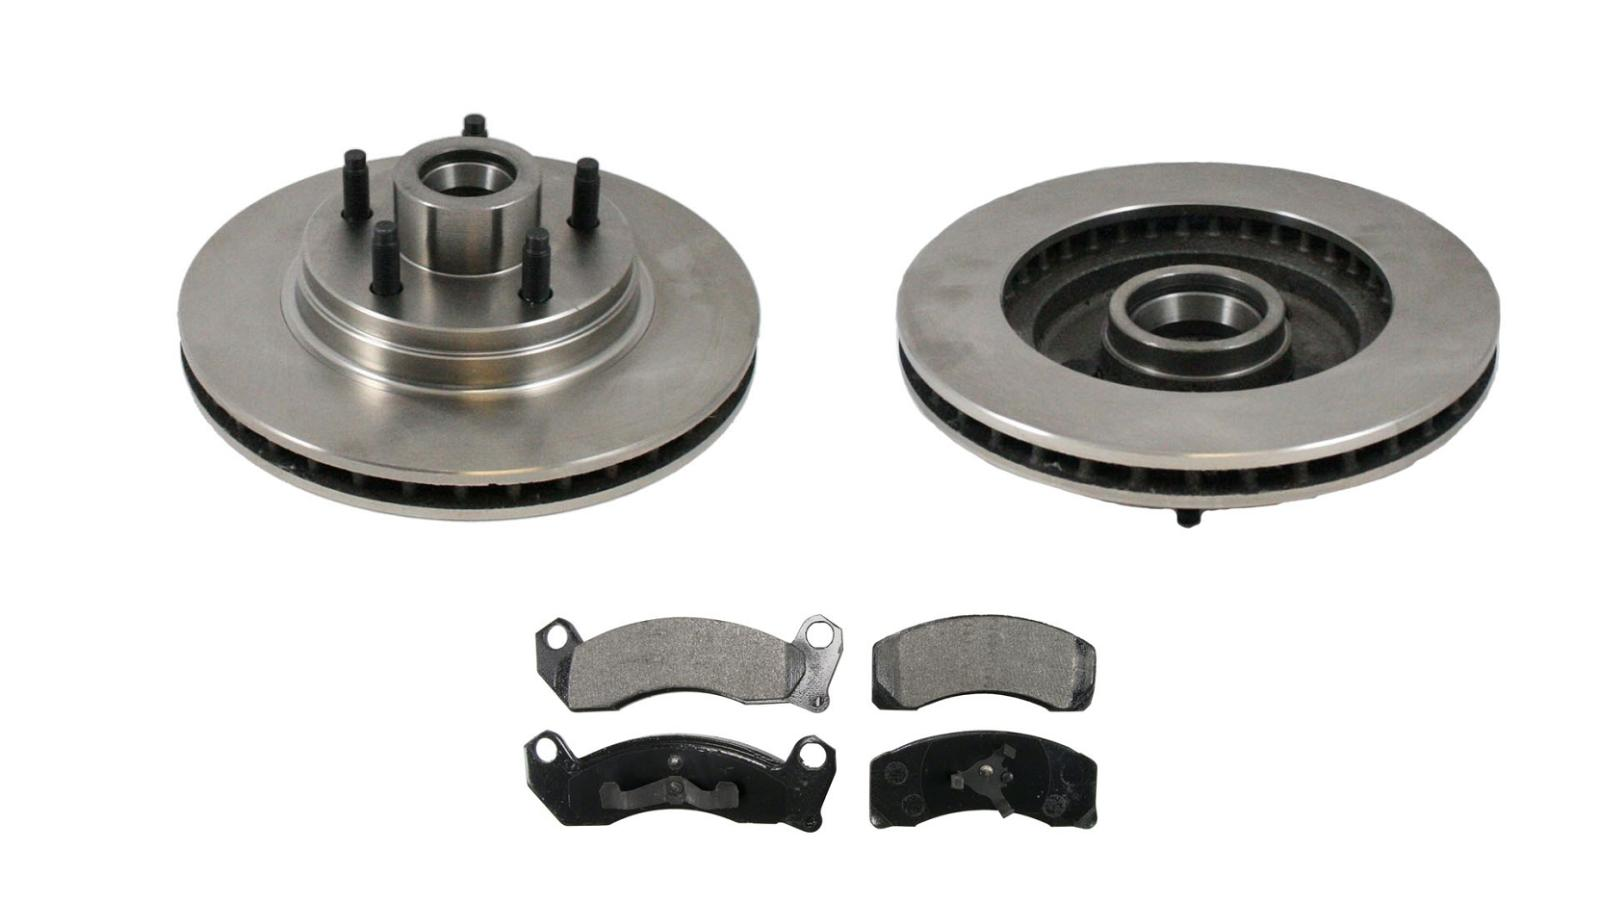 84 89 Mark Vii Front Without Abs Brakes Brake Rotor Pads 2